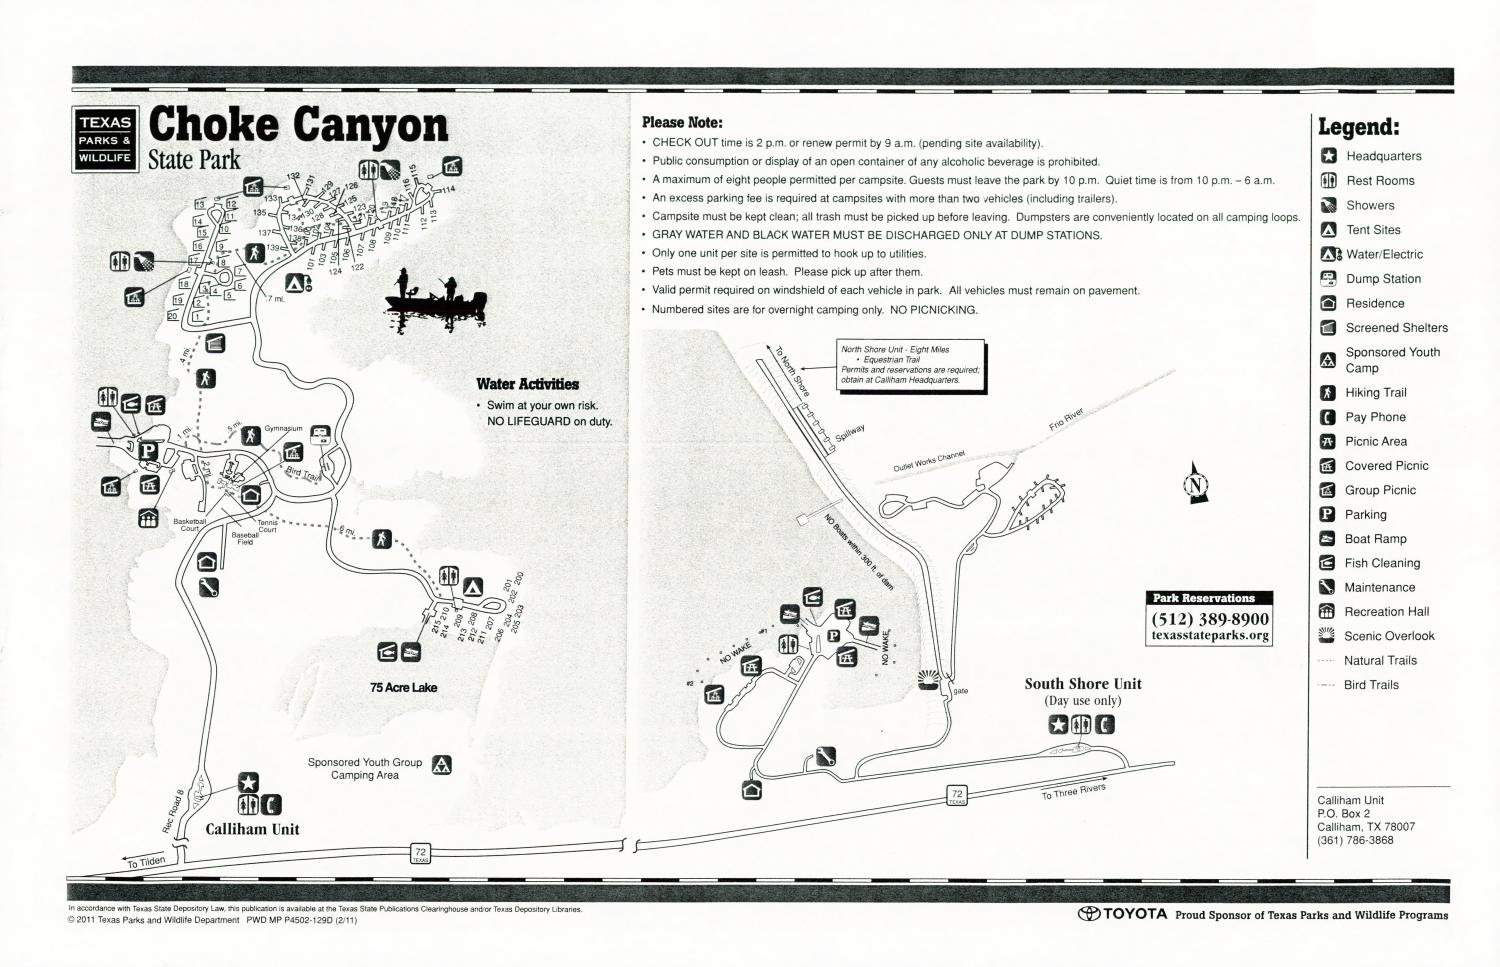 Choke Canyon State Park, Map of the Choke Canyon State Park outlining hiking trails and highlighting activities, facilities, and other features such as bathrooms, lodgings, water/electric, etc. It also contains general information for the park and for the Texas Parks and Wildlife Department. Additionally, there are various advertisements, including one with information about the Texas State Parks Pass.,